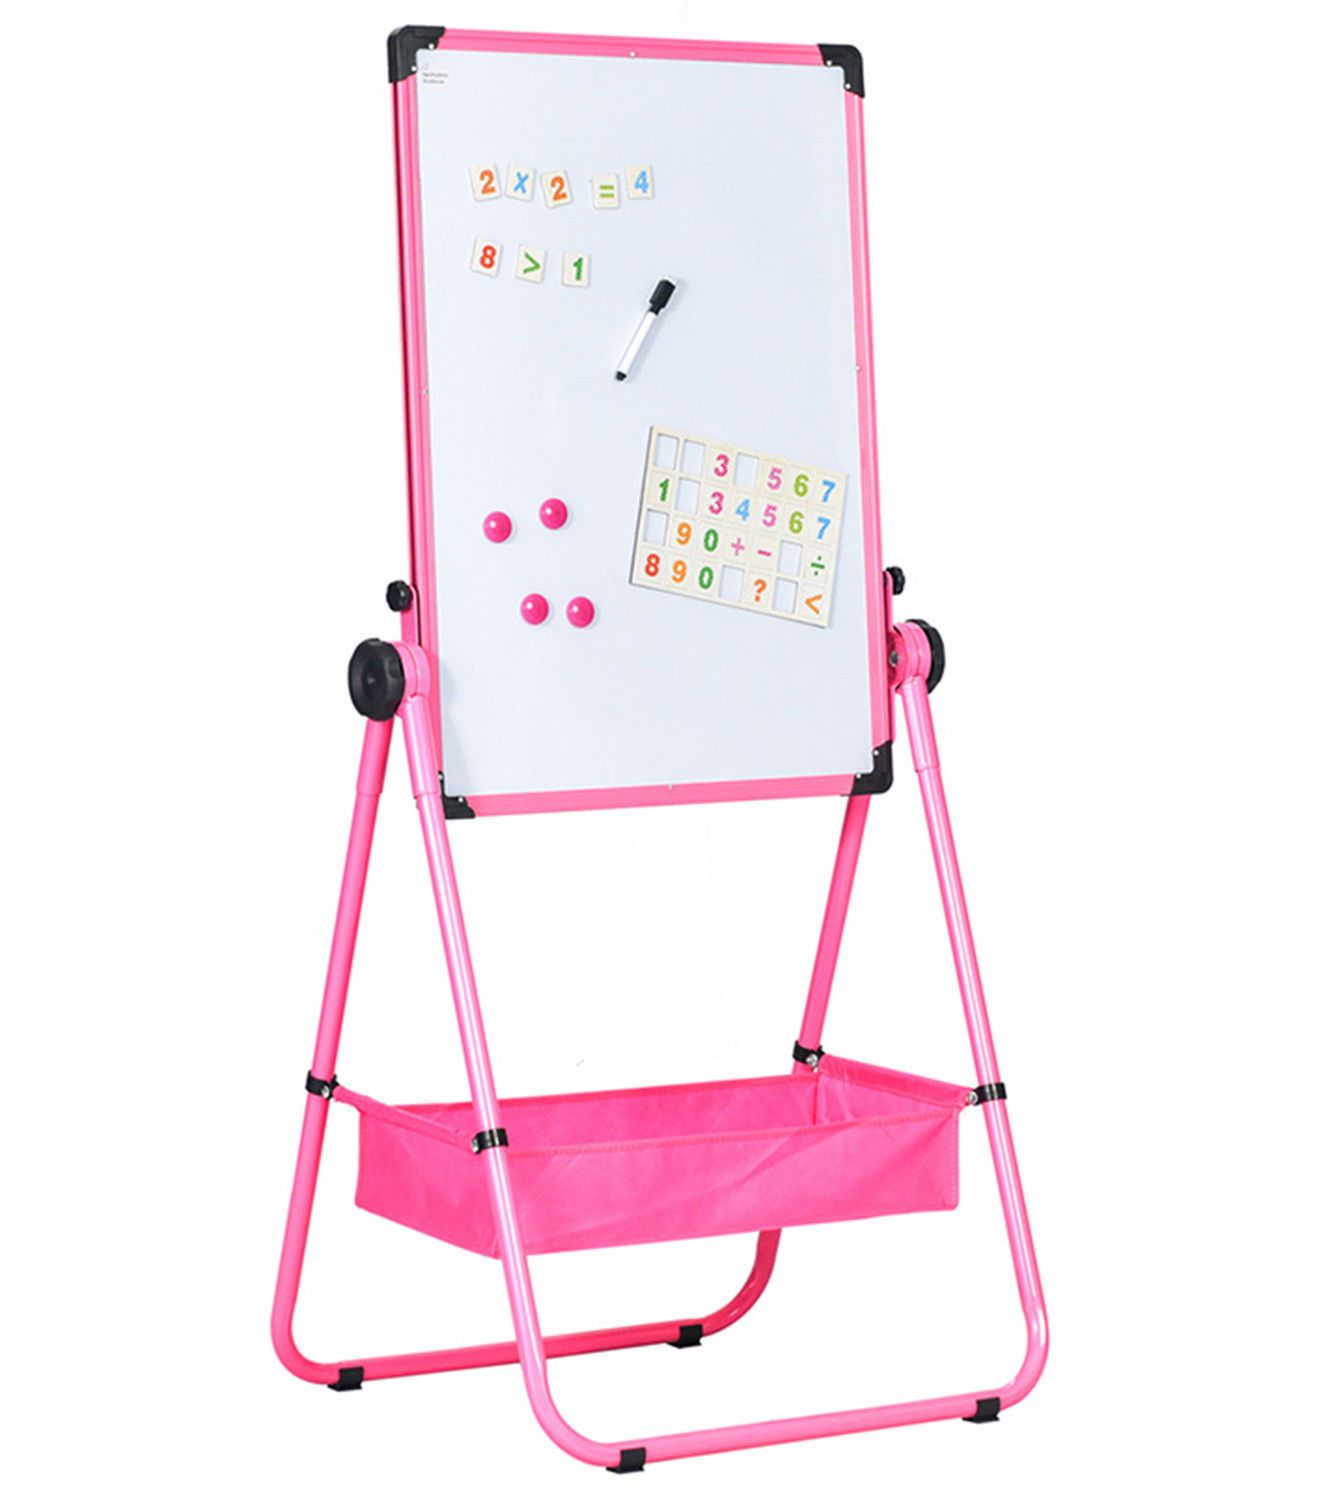 Easel Whiteboard U-stand Magnetic Dry Erase Board Office School Mark Board by